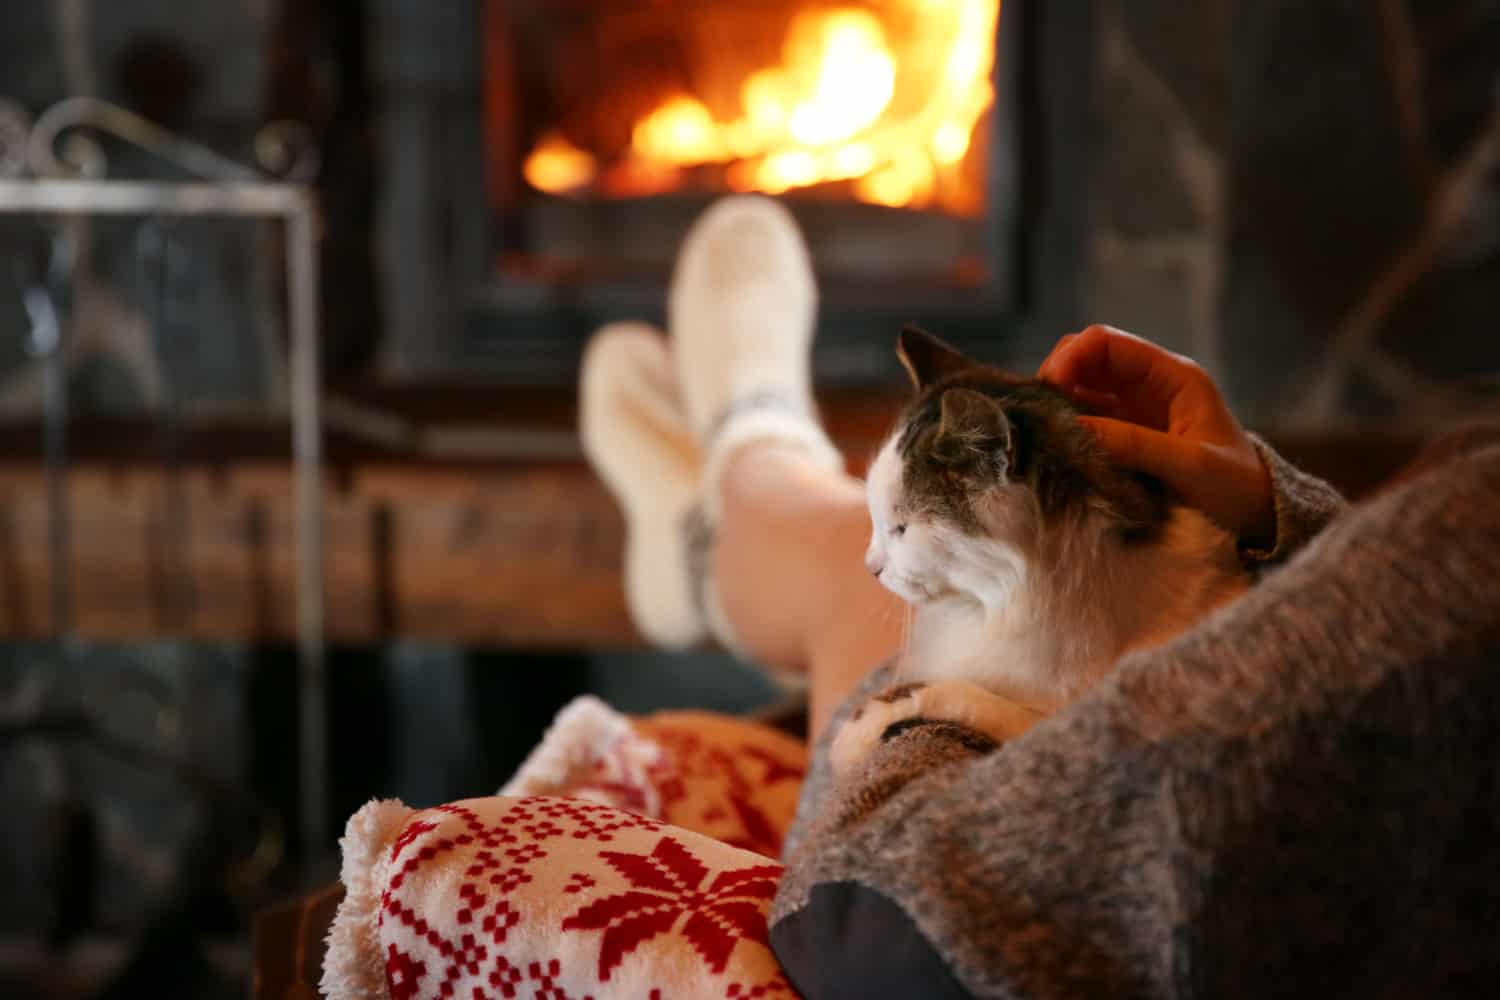 A woman is resting with a cat near a fireplace